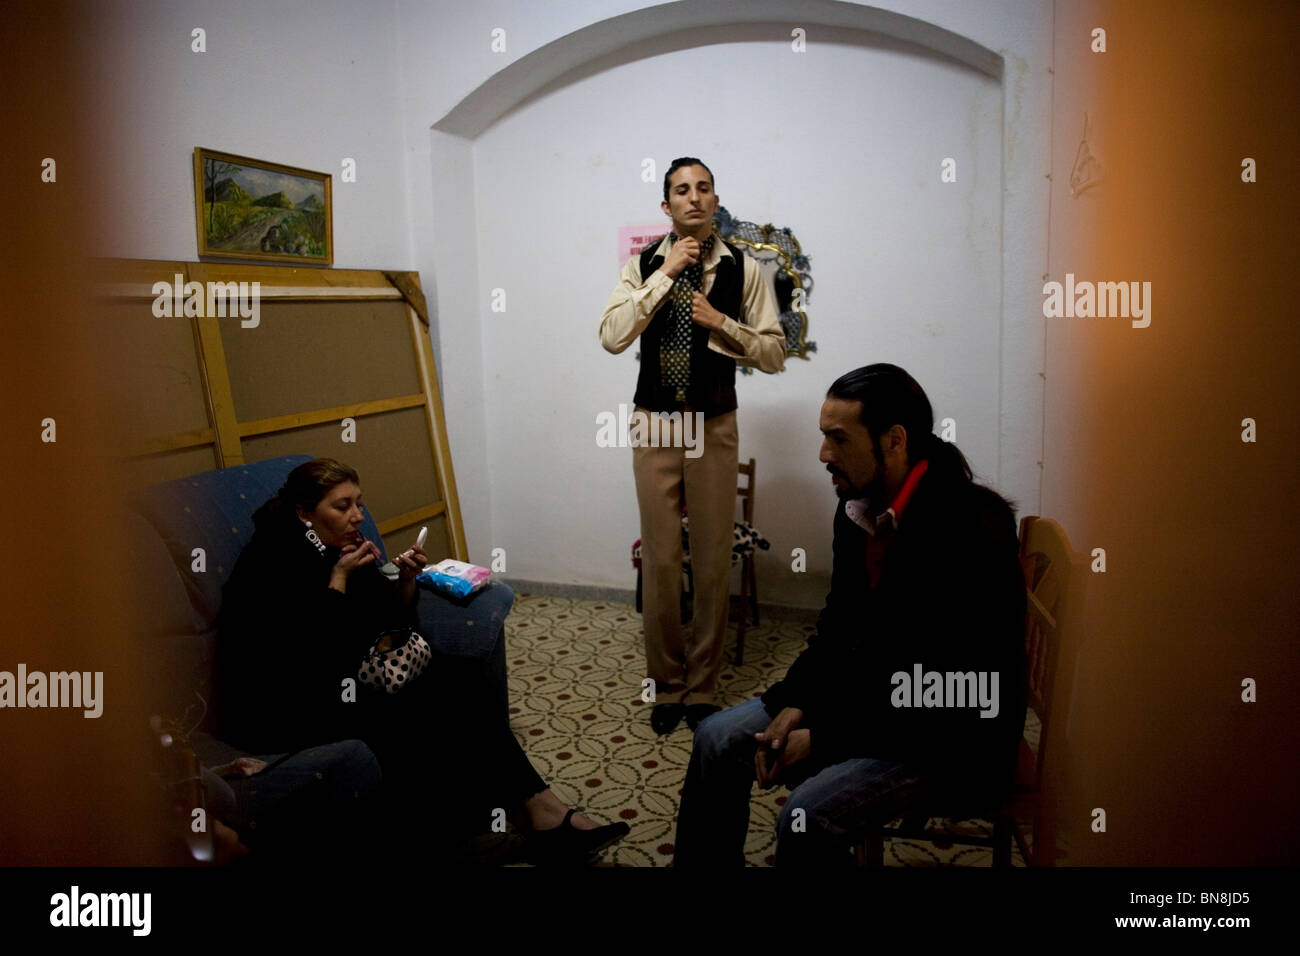 Flamenco singers and dancers get ready backstage before competing in a National Flamenco competition in Ubrique, - Stock Image